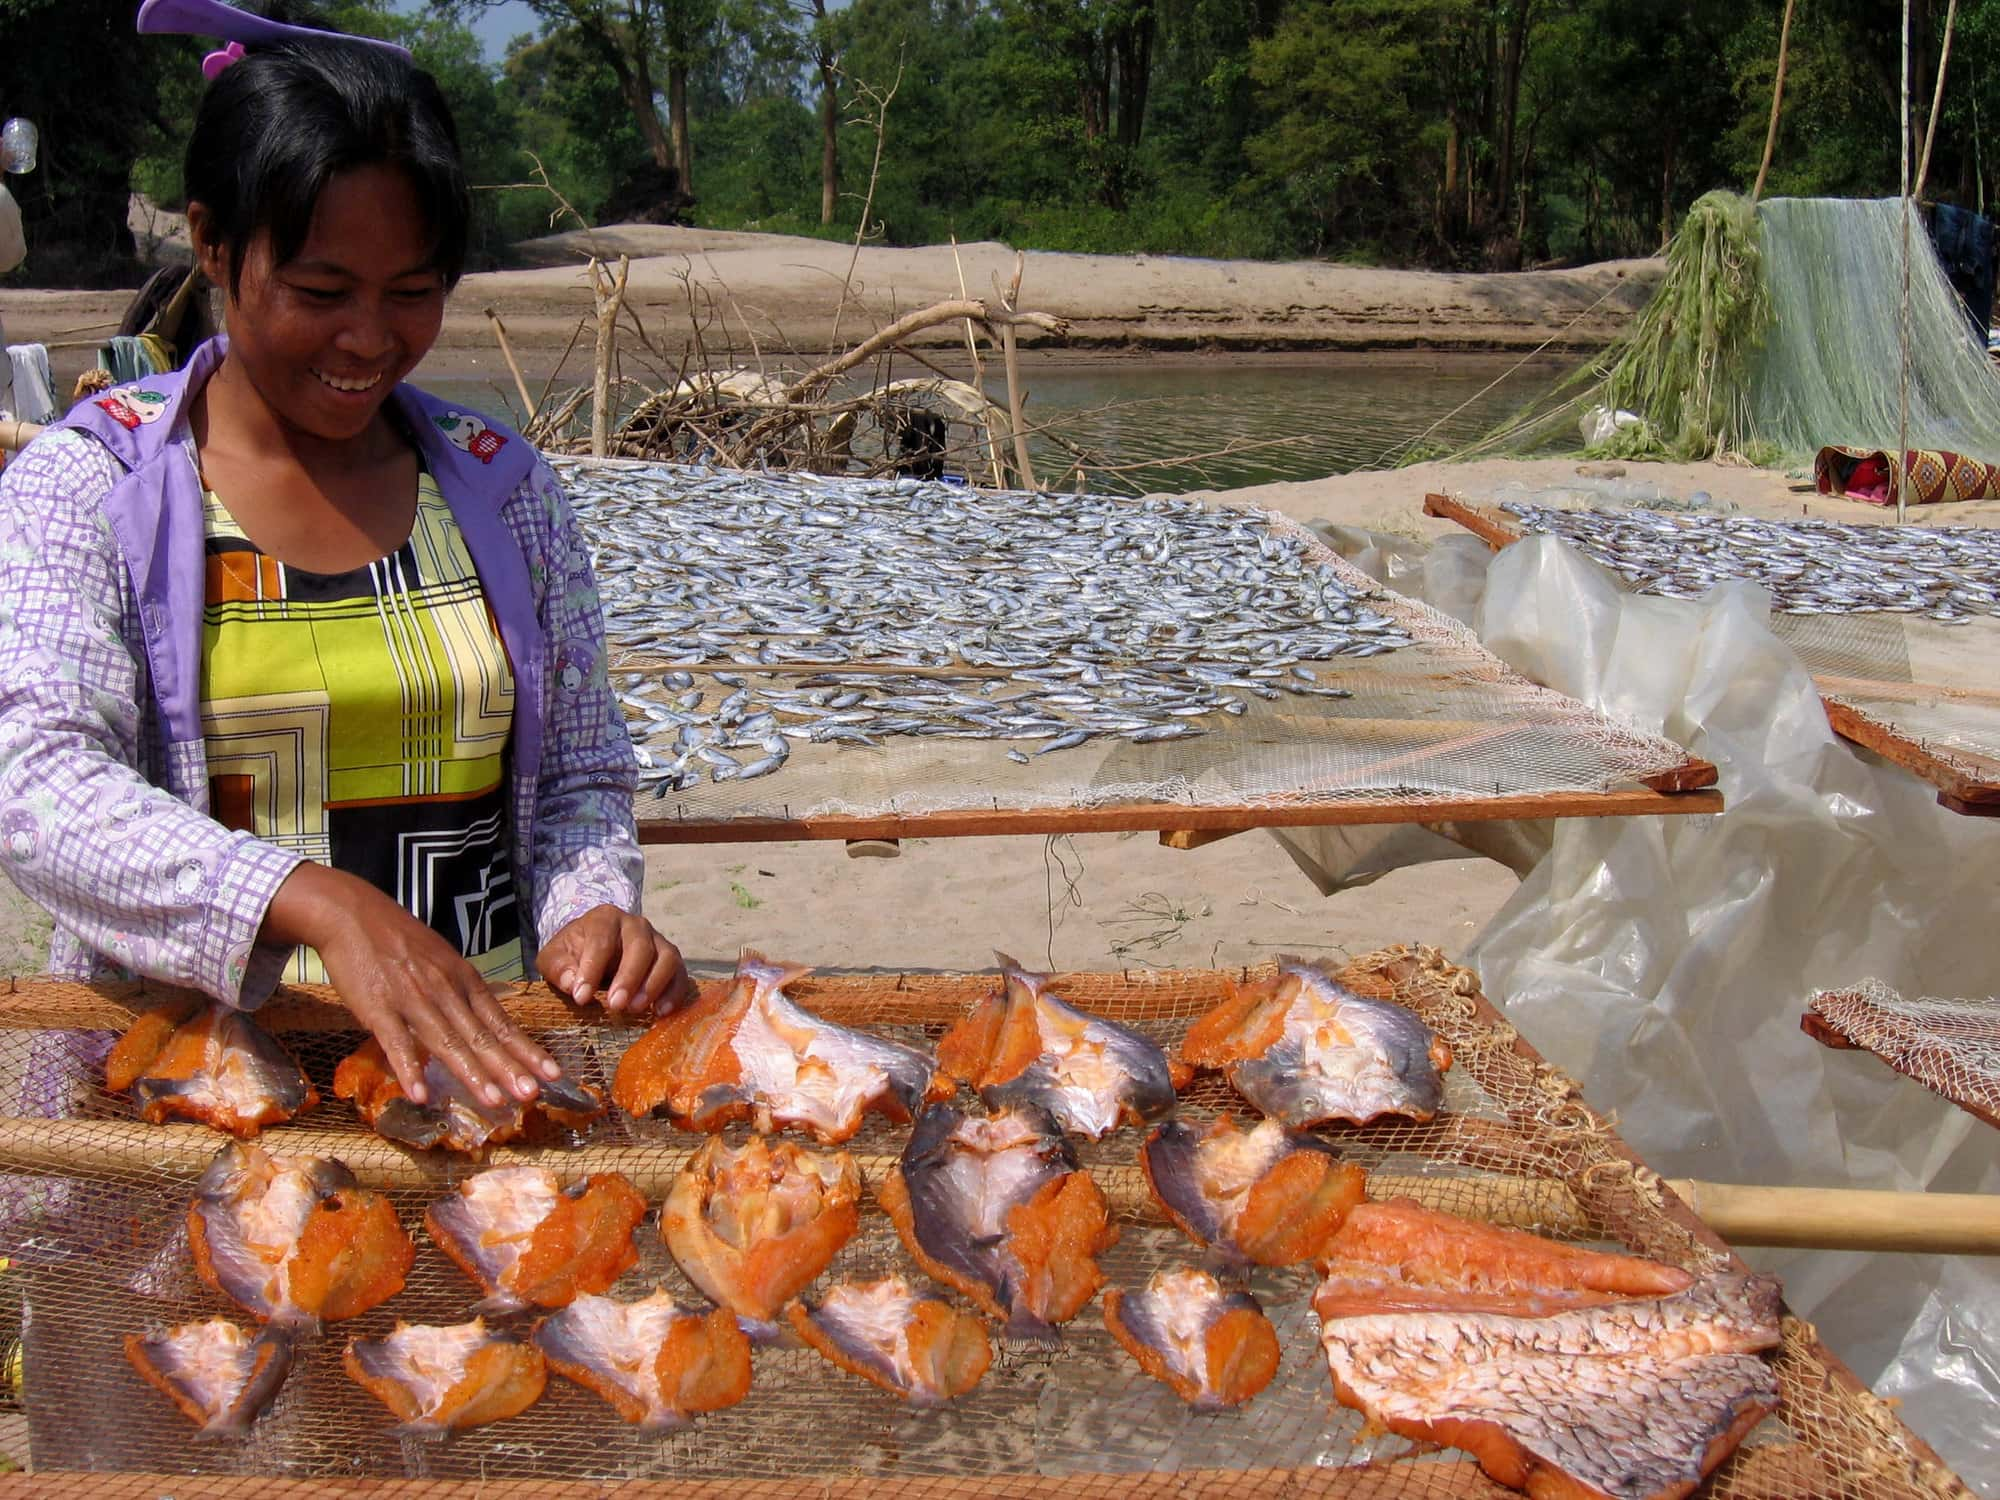 Aquatic food systems provide decent employment opportunities for youth. Photo by Edward H. Allison